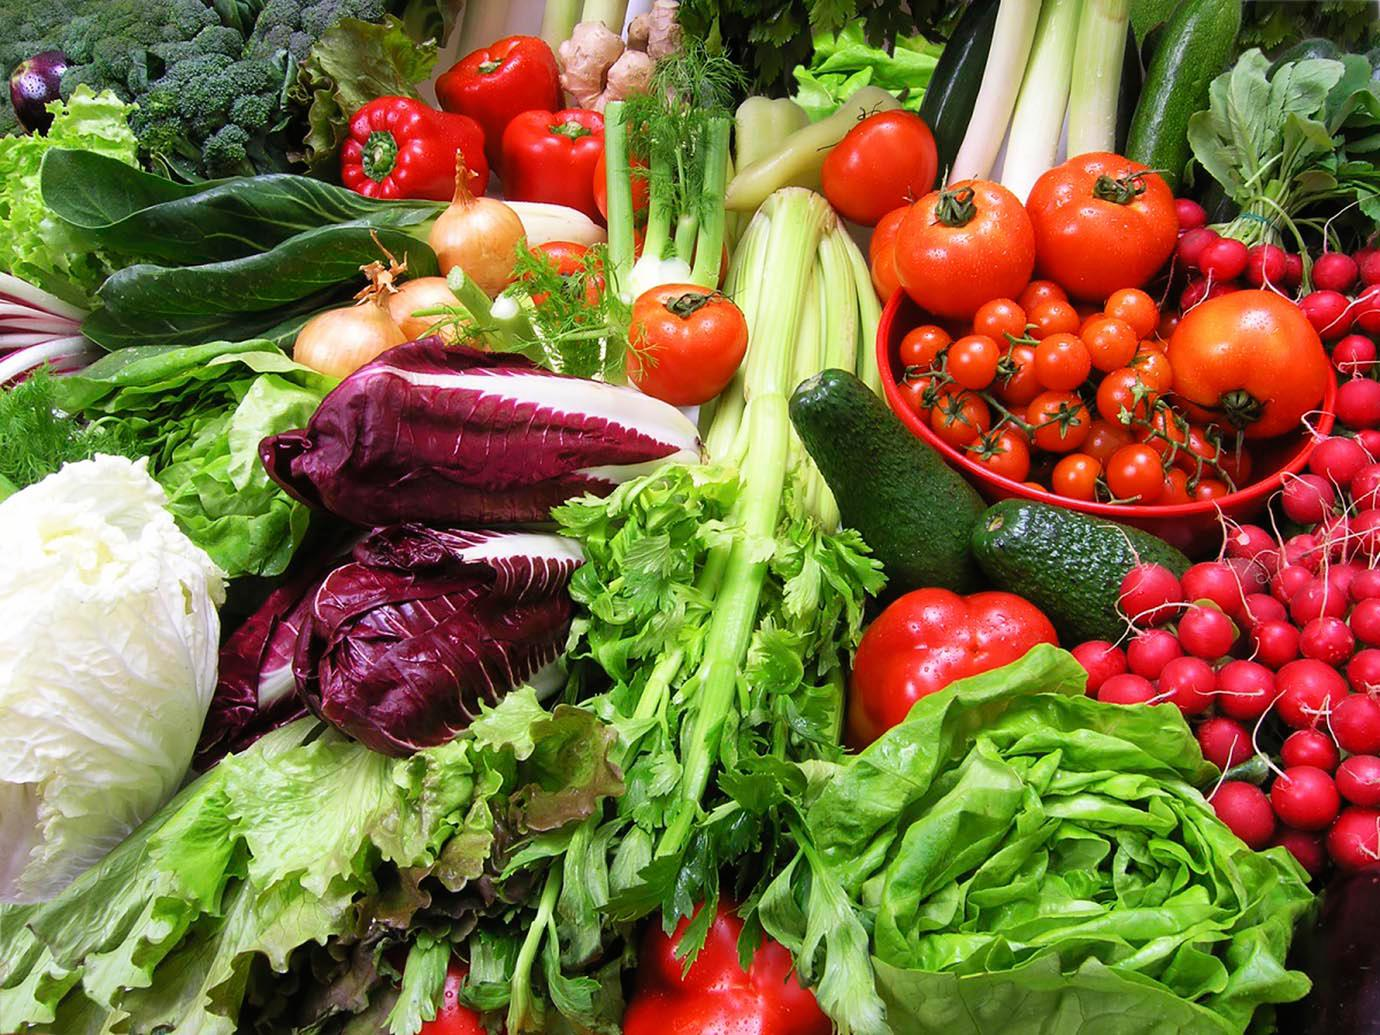 a selection of fresh organic vegetables: lettuce, tomatoes, peppers, etc